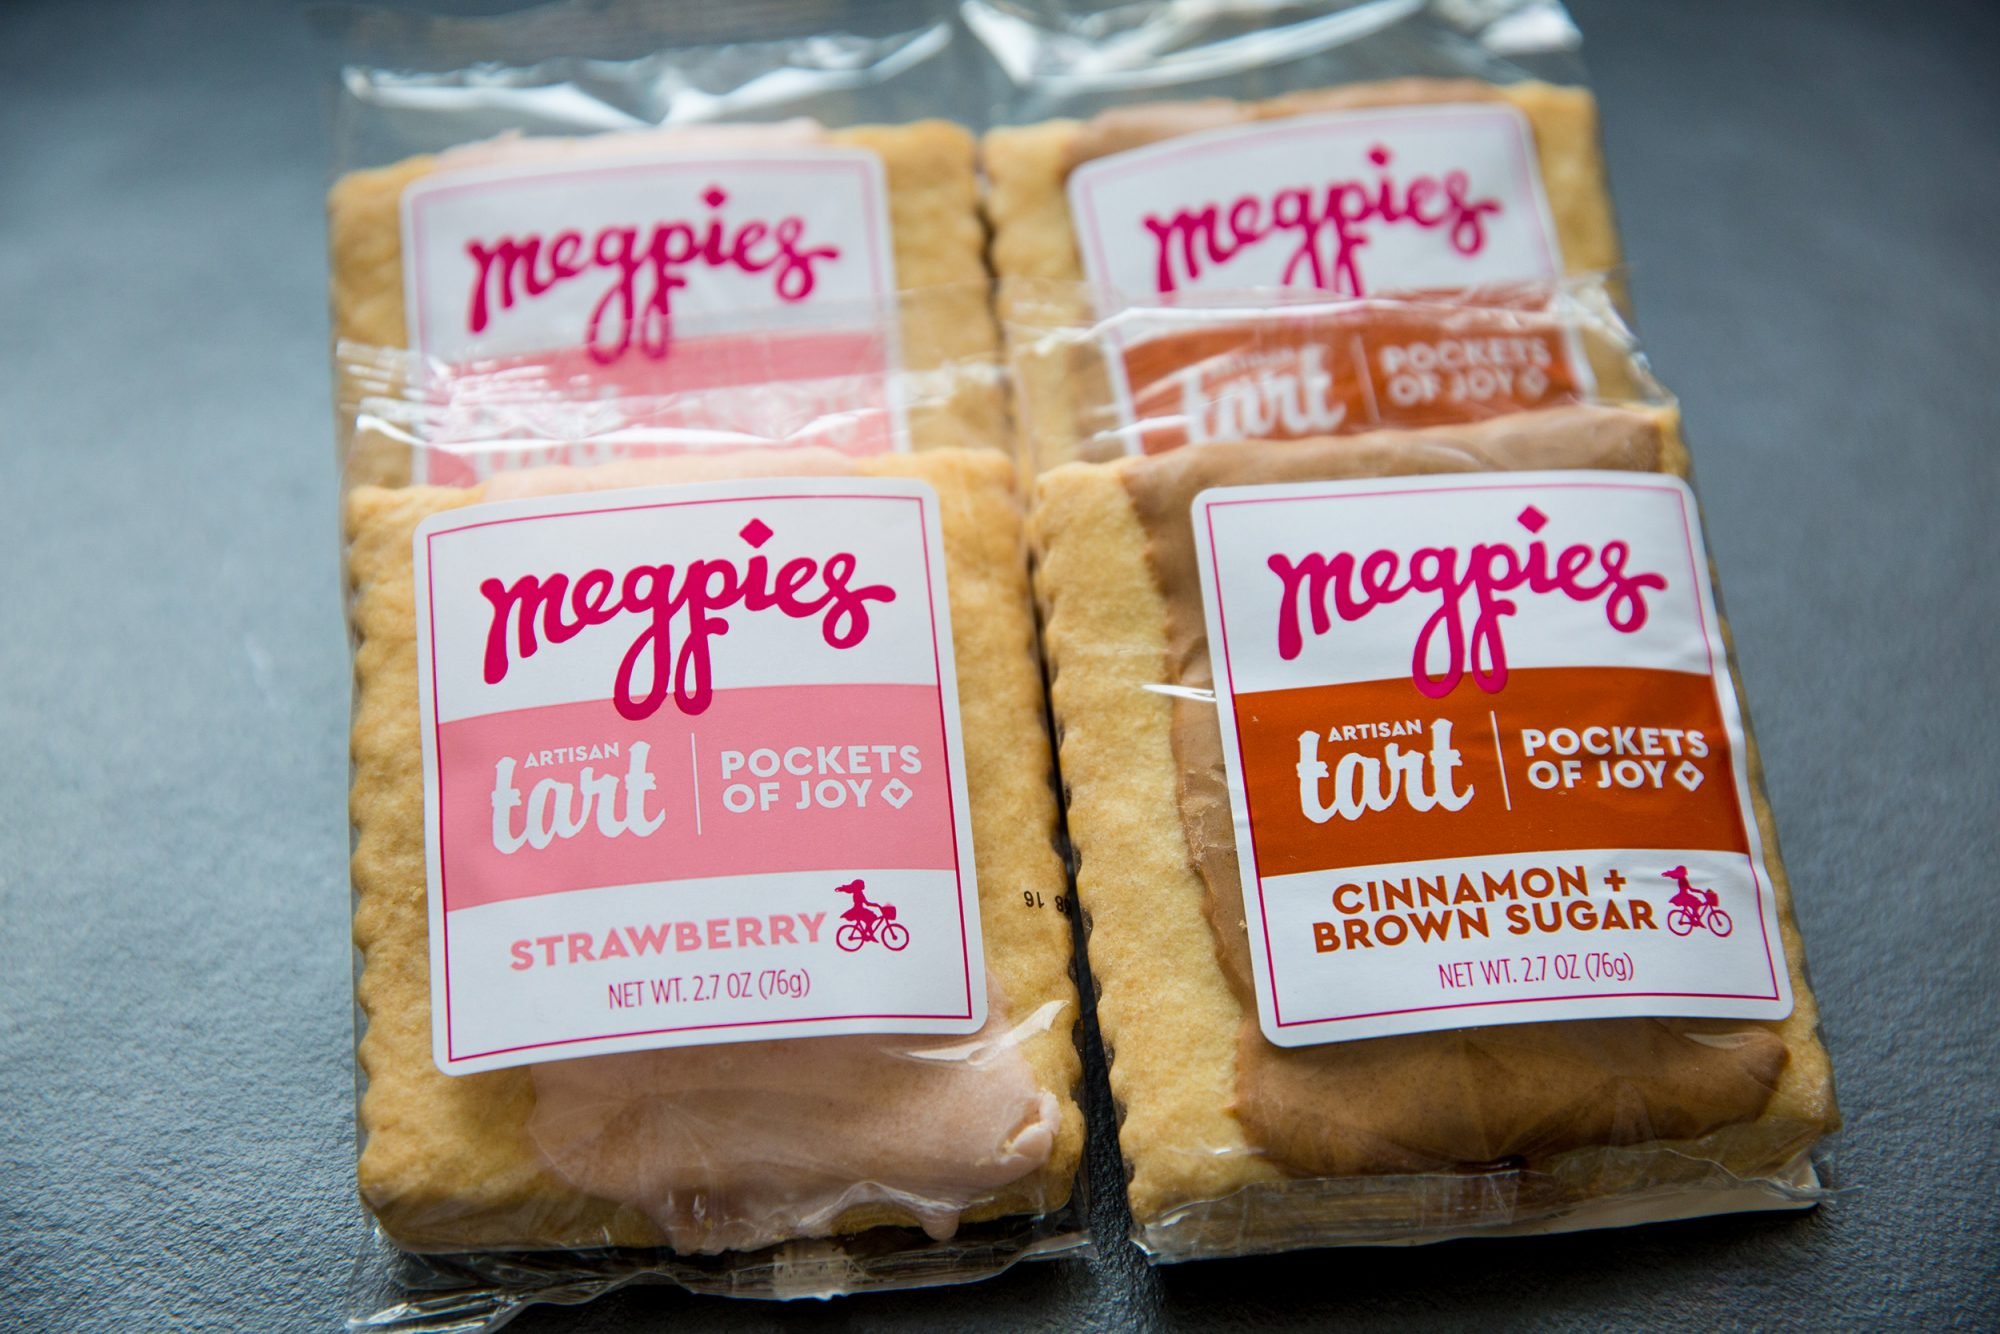 EC: How Megpies Became the Newest Starbucks Snack